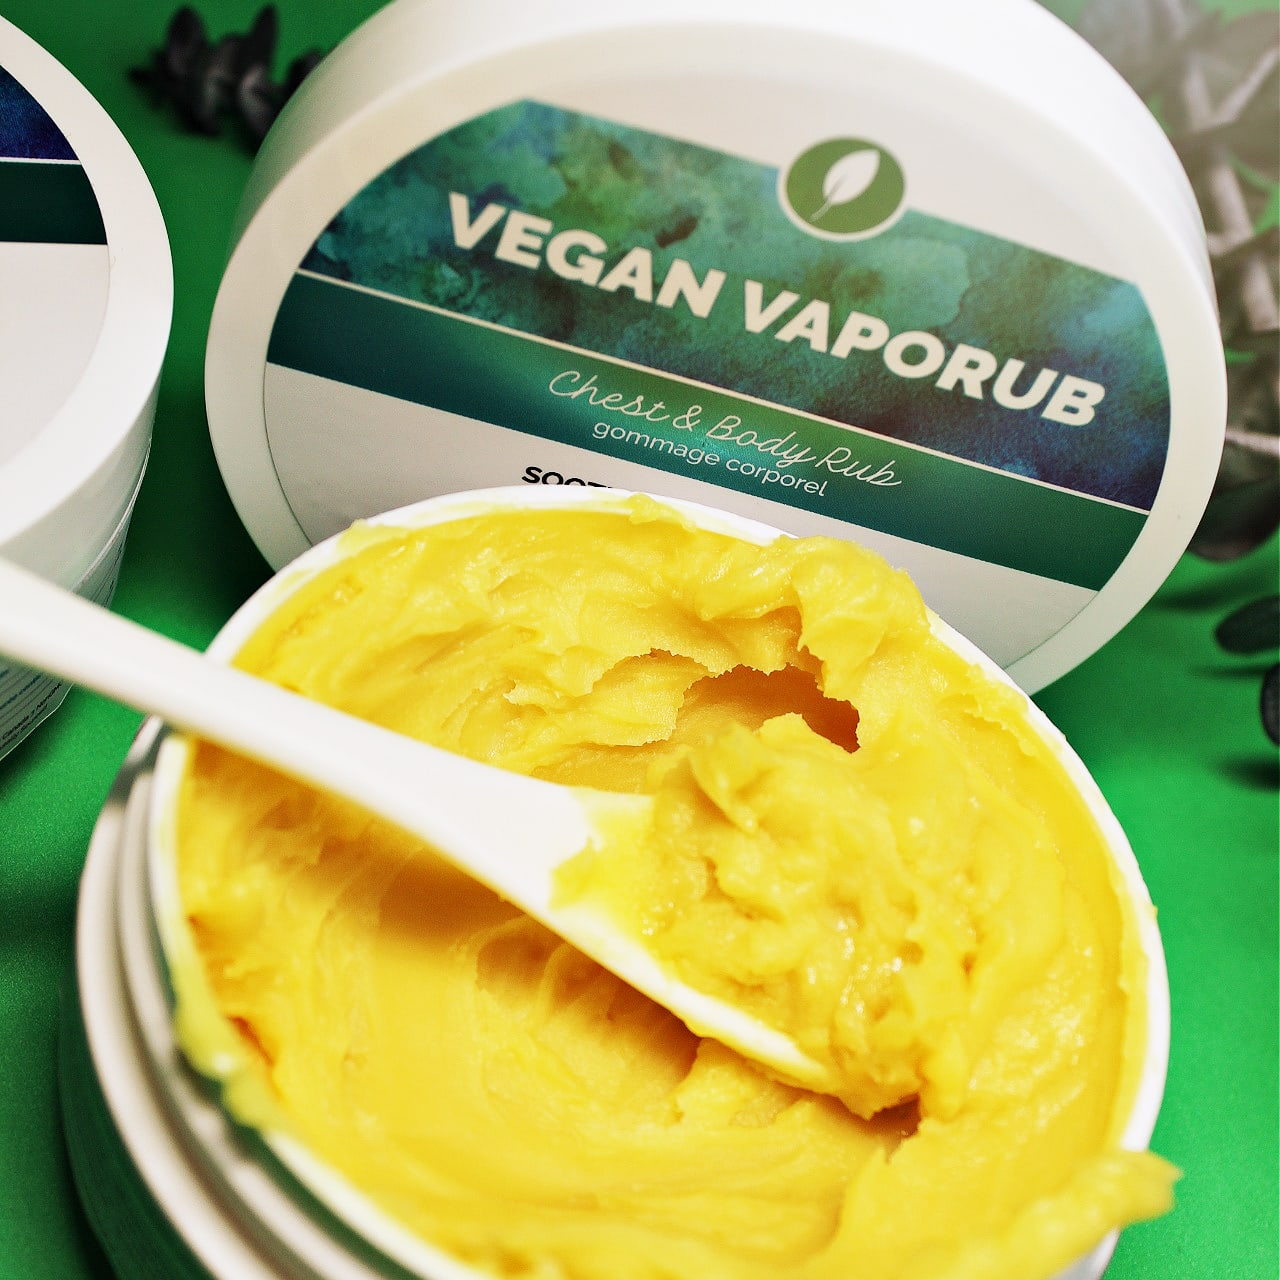 Vegan Vapor Rub - by Lowens.ca #vegan #vapor #vaporub #chestrub #coldseason #chestandbody #allnatural #canadiangreenbeauty